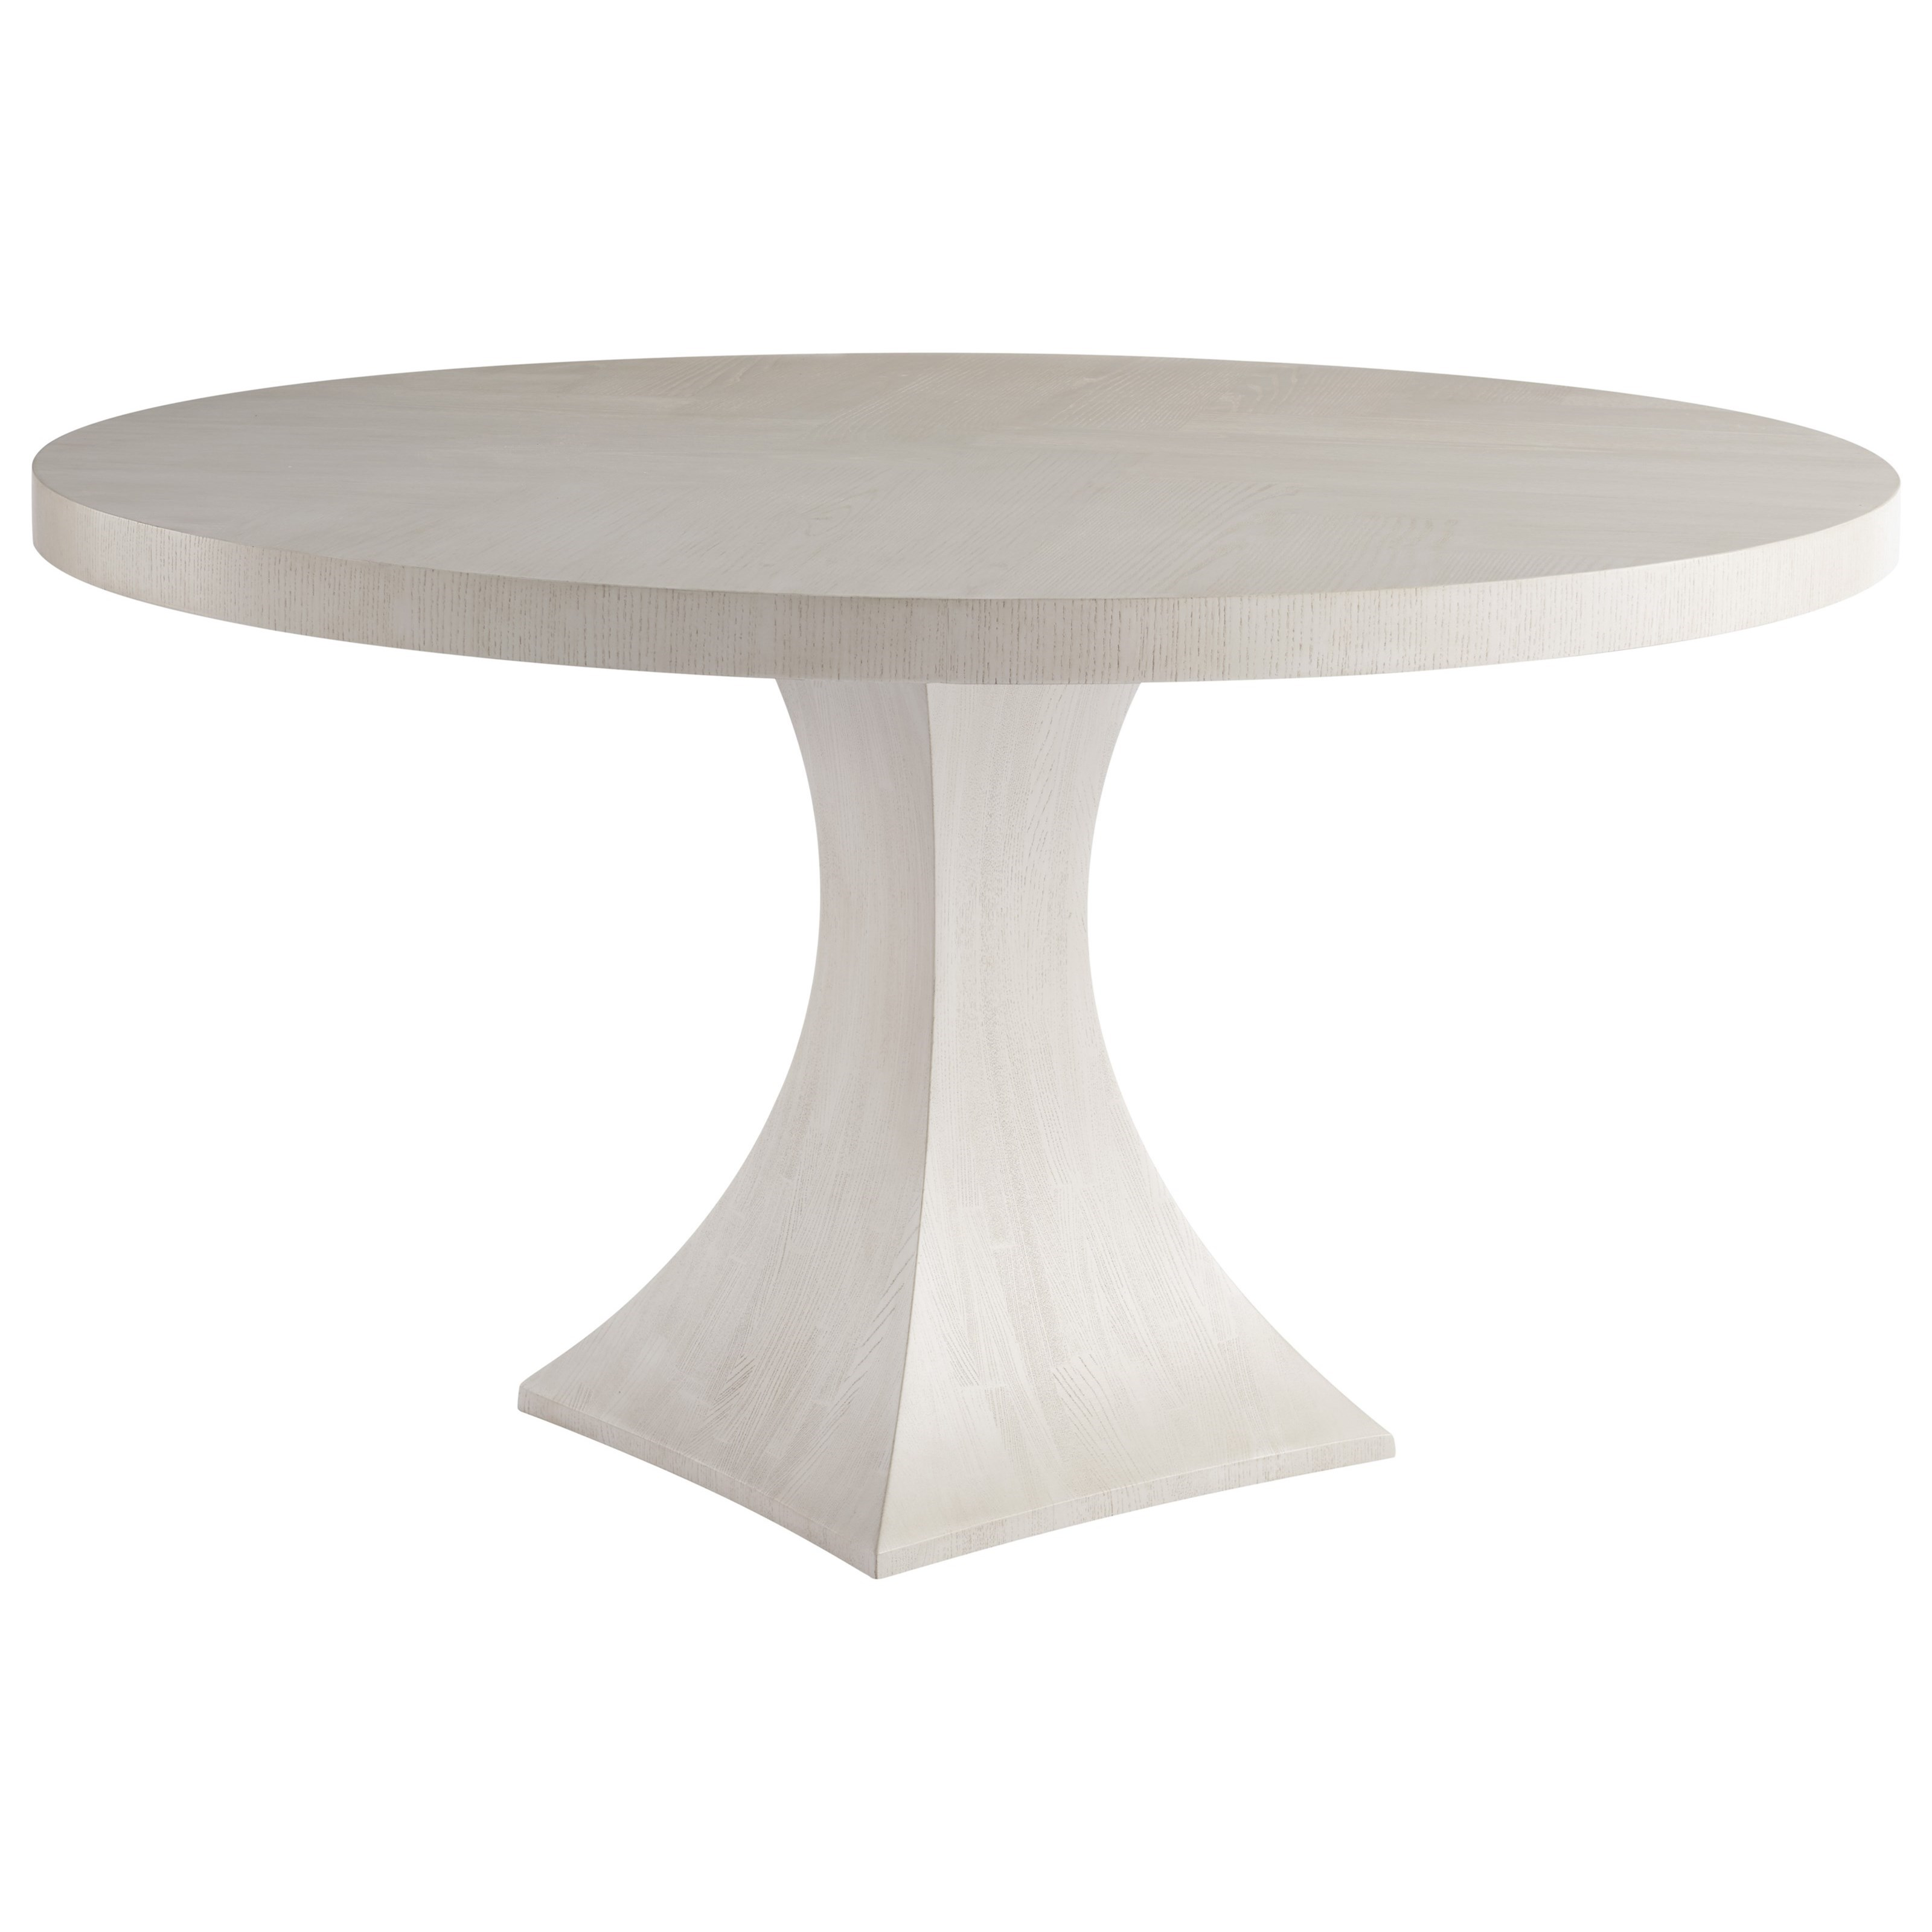 Paradox Integrity Dining Table by Universal at Zak's Home